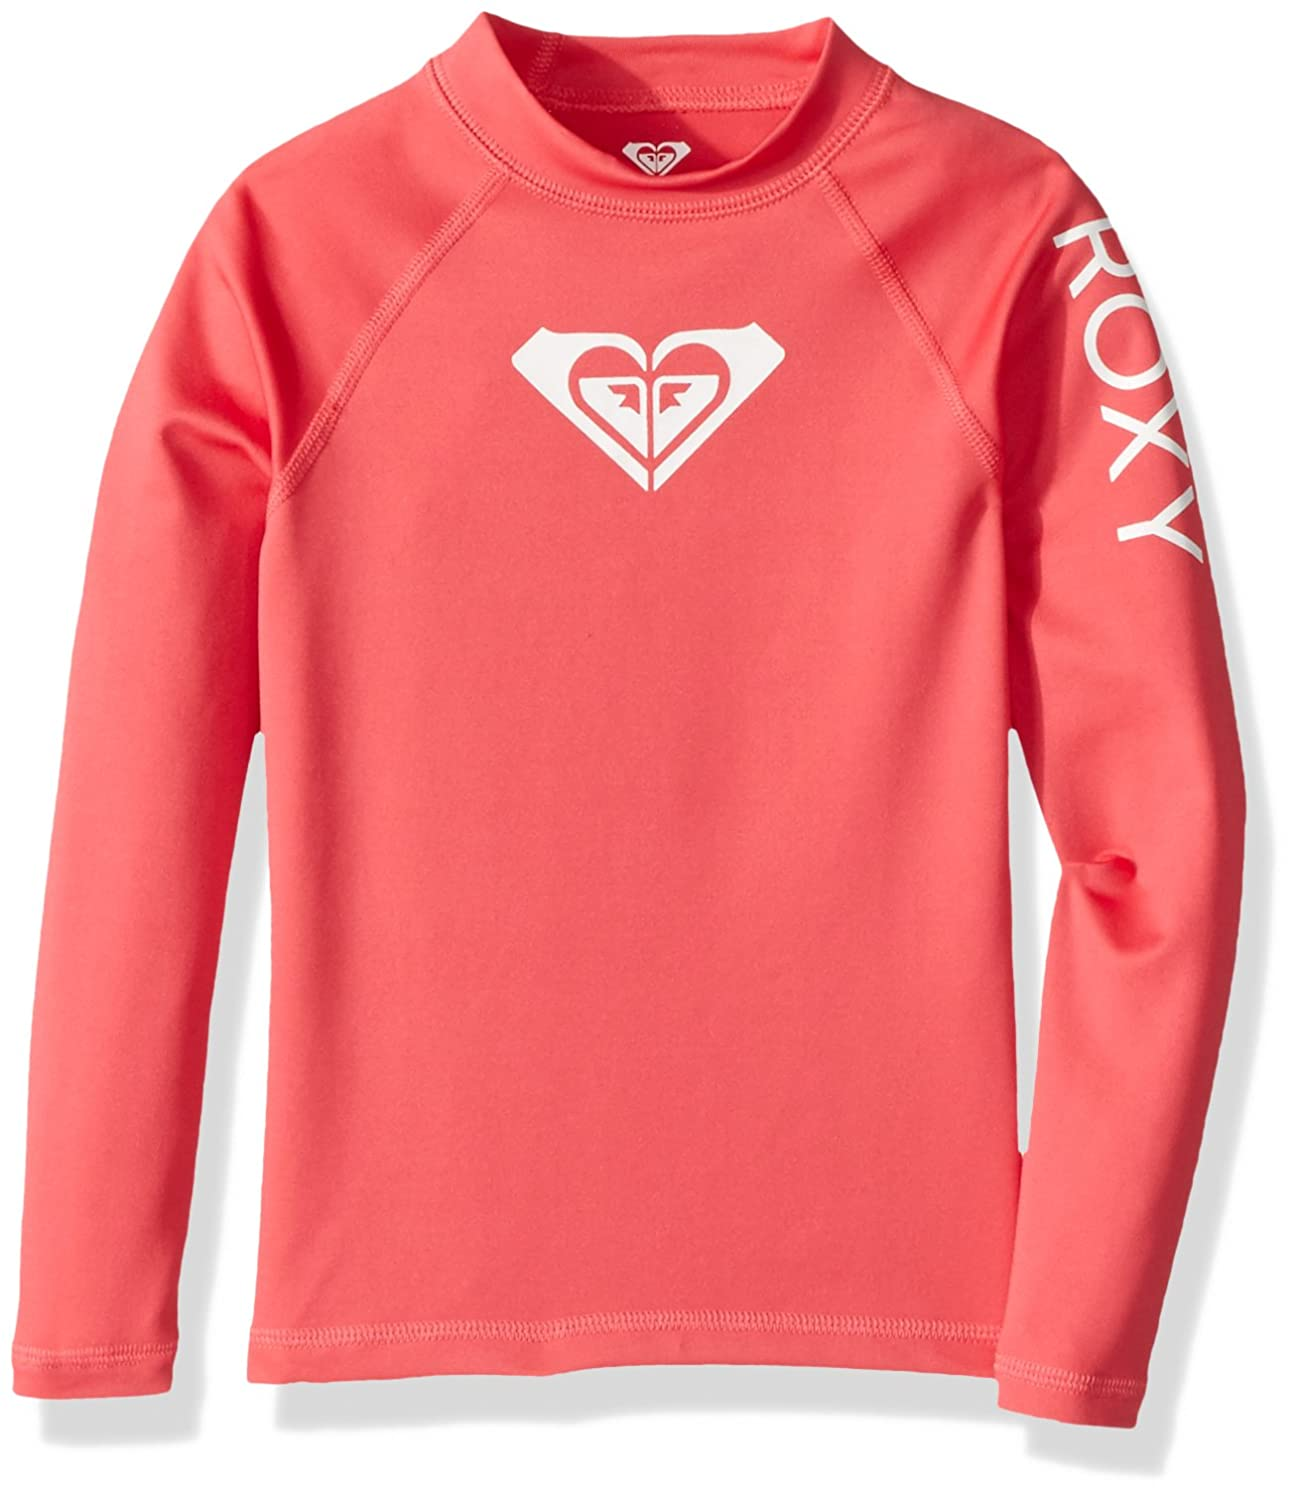 Roxy Girls Whole Hearted Long Sleeve Rashguard Roxy Children' s Apparel ERGWR03007